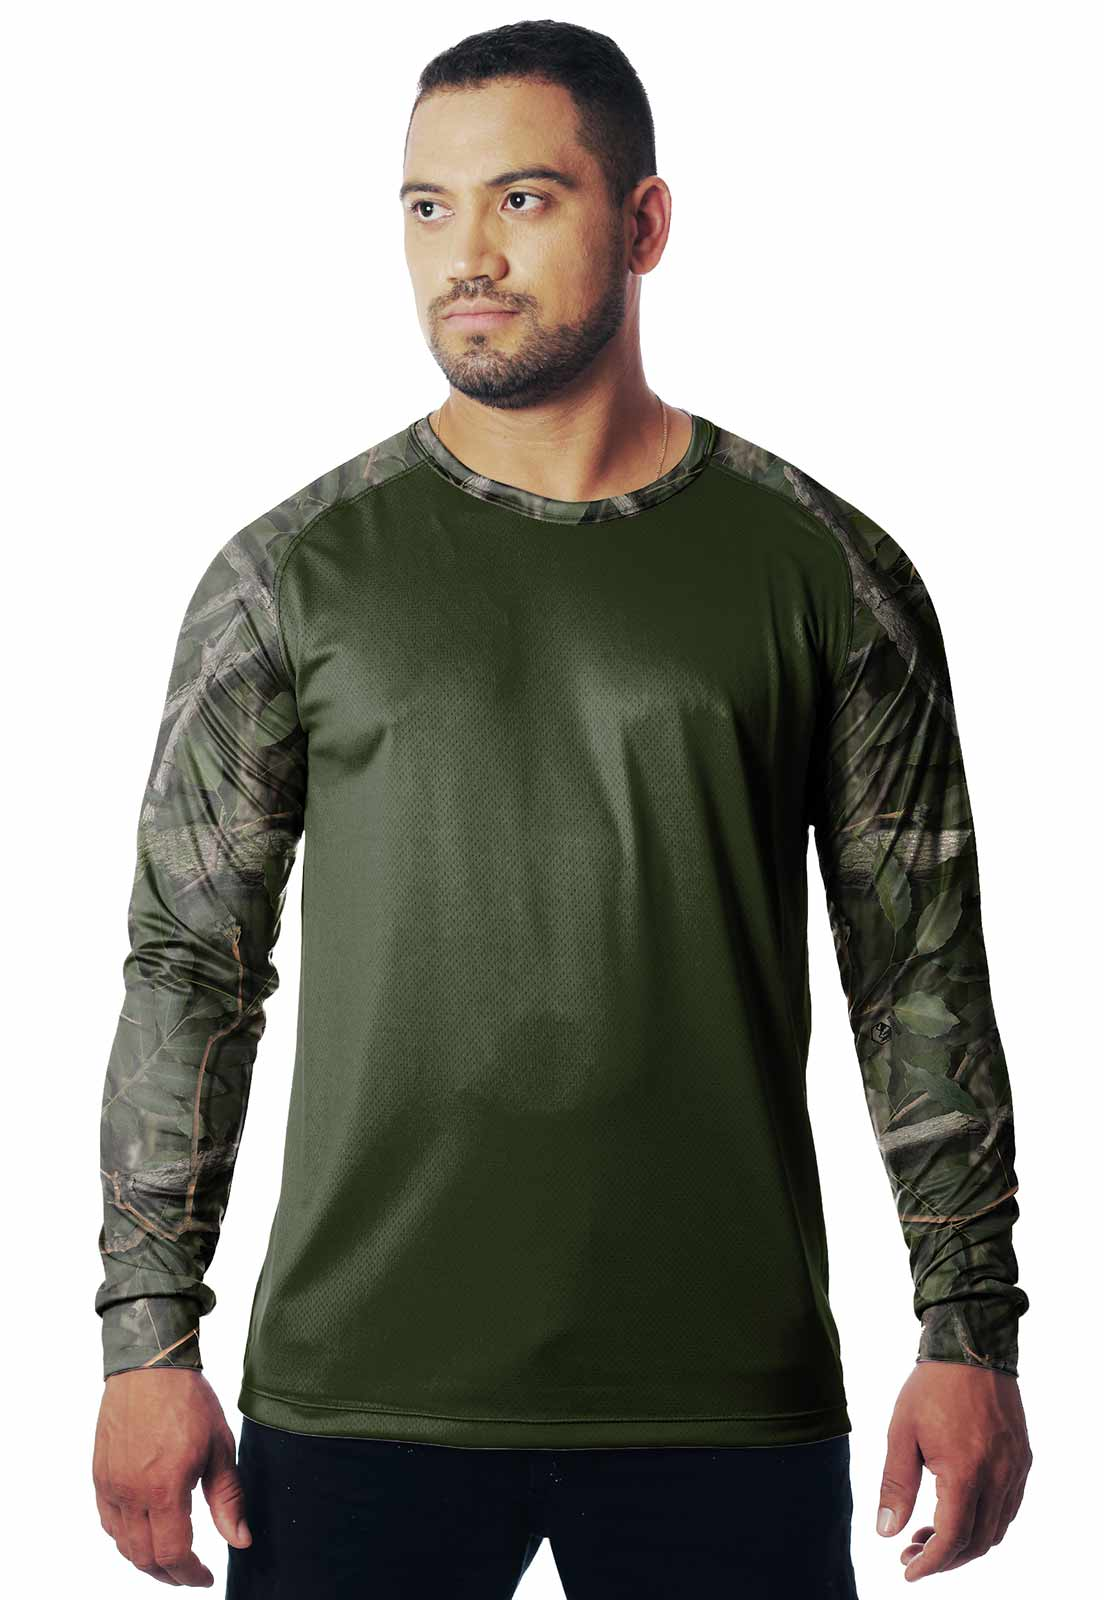 CAMISETA CAMUFLADA AMAZÔNIA LAZER 09 MANGA LONGA MASCULINA - REAL HUNTER OUTDOORS